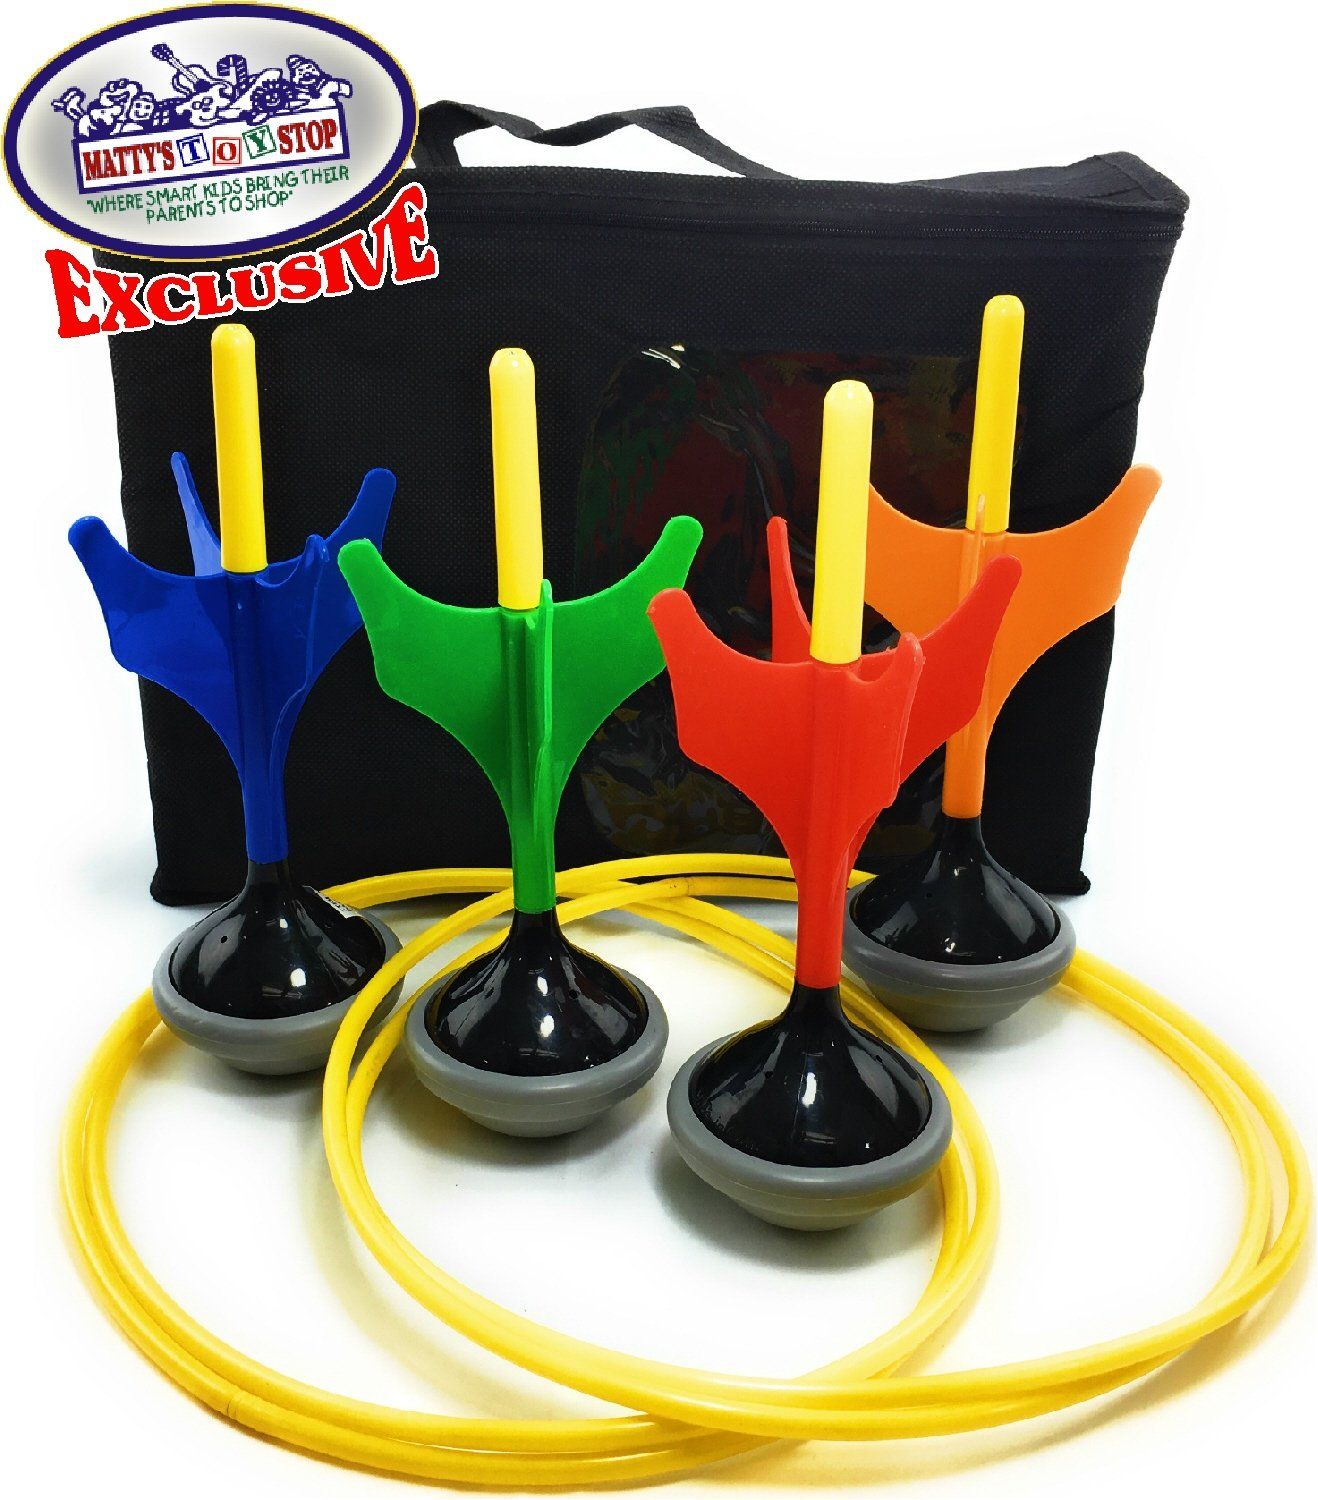 Matty's Toy Stop Deluxe Lawn Darts Set with 4 Lawn Darts, 2 Target Rings & Storage Bag by Matty's Toy Stop